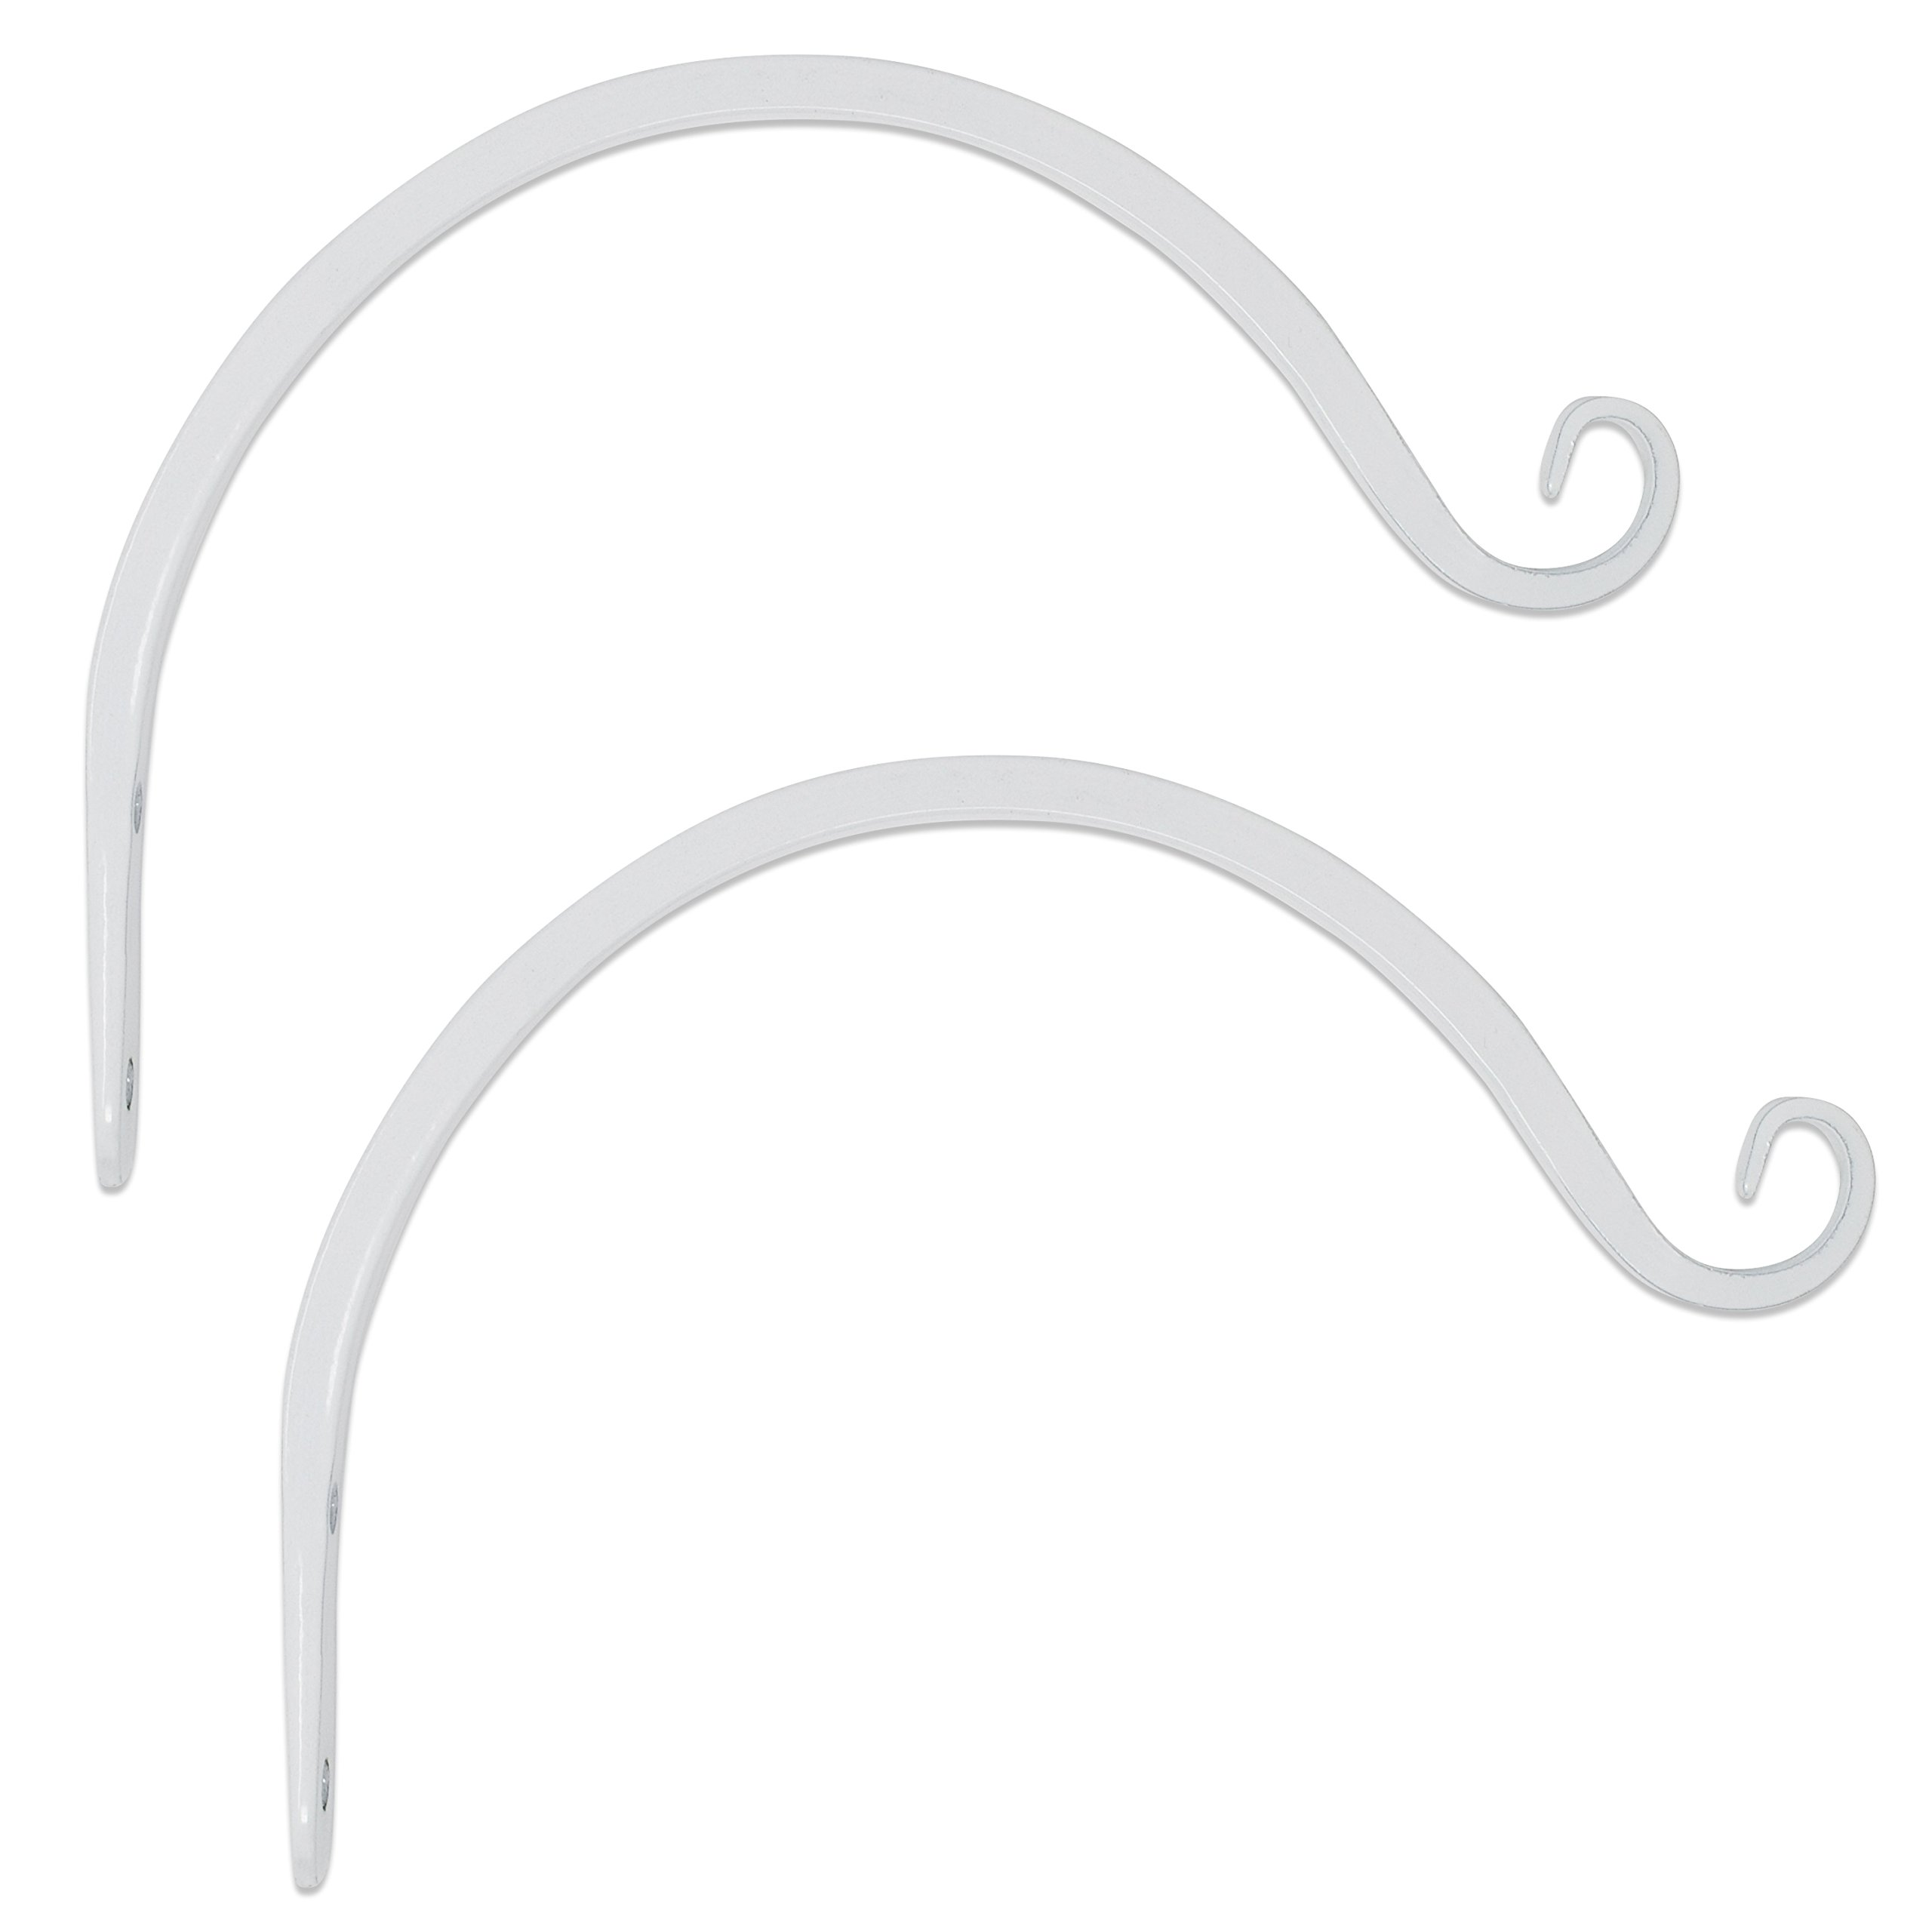 GrayBunny GB-6863B Hand Forged Curved Hook, 8.5 Inch, White, 2-Pack, For Bird Feeders, Planters, Lanterns, Wind Chimes, As Wall Brackets and More!